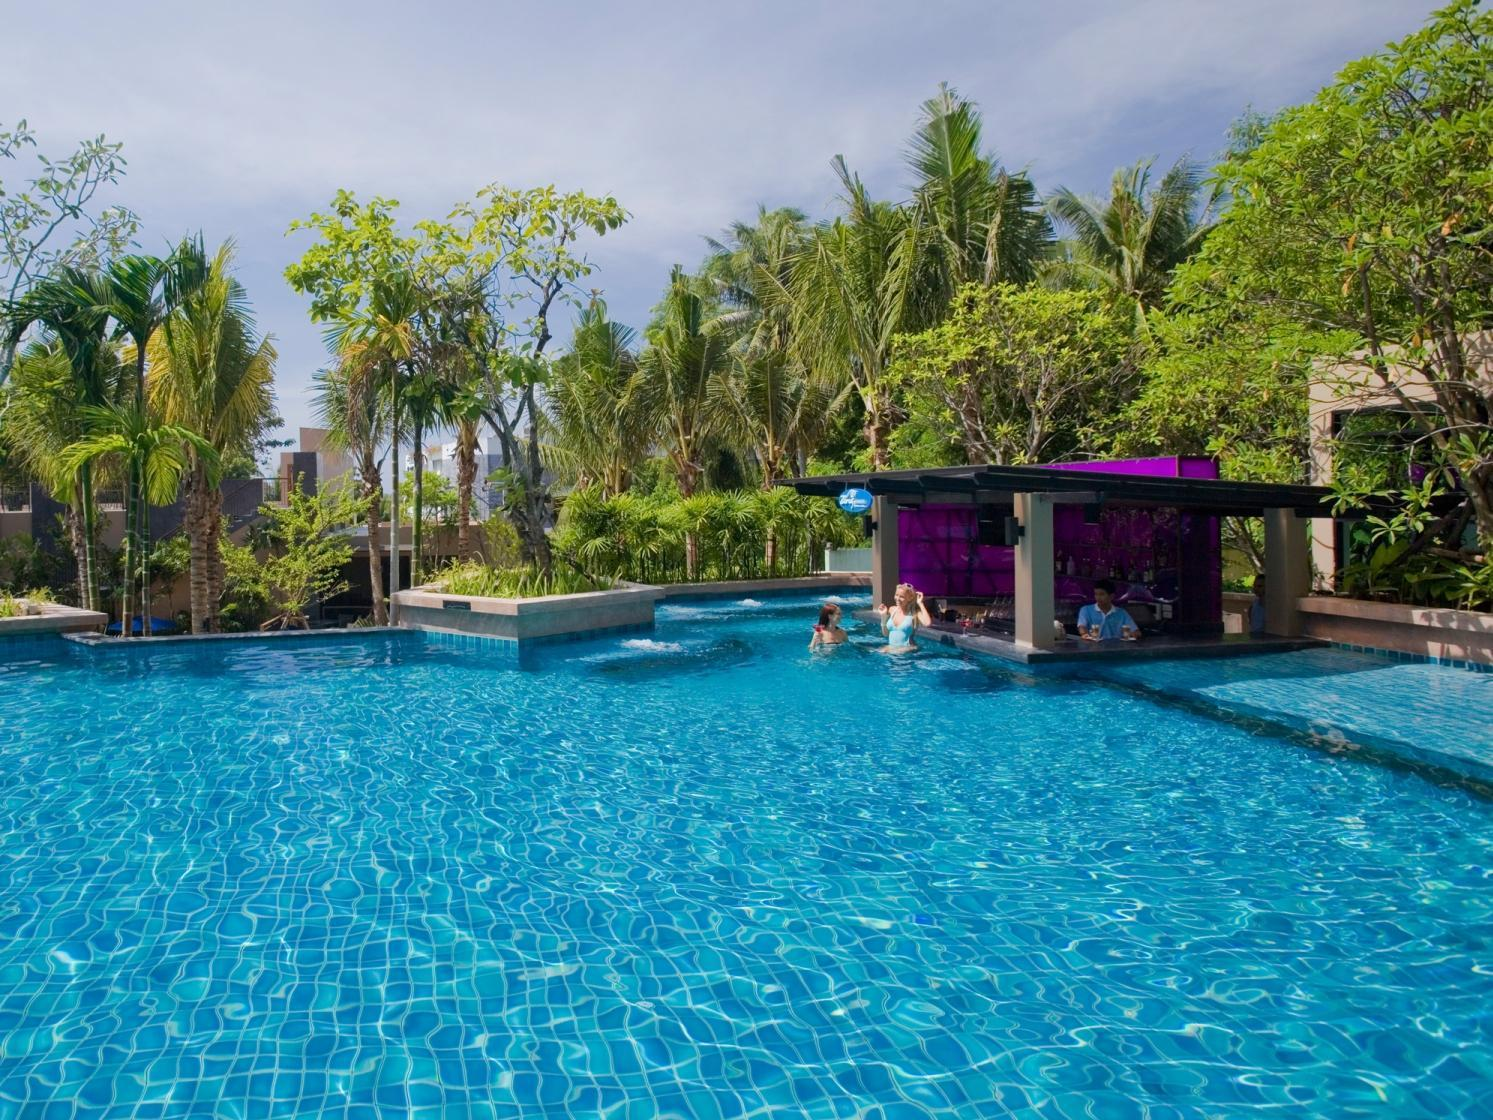 Avista Phuket Resort & Spa, Kata Beach Phuket